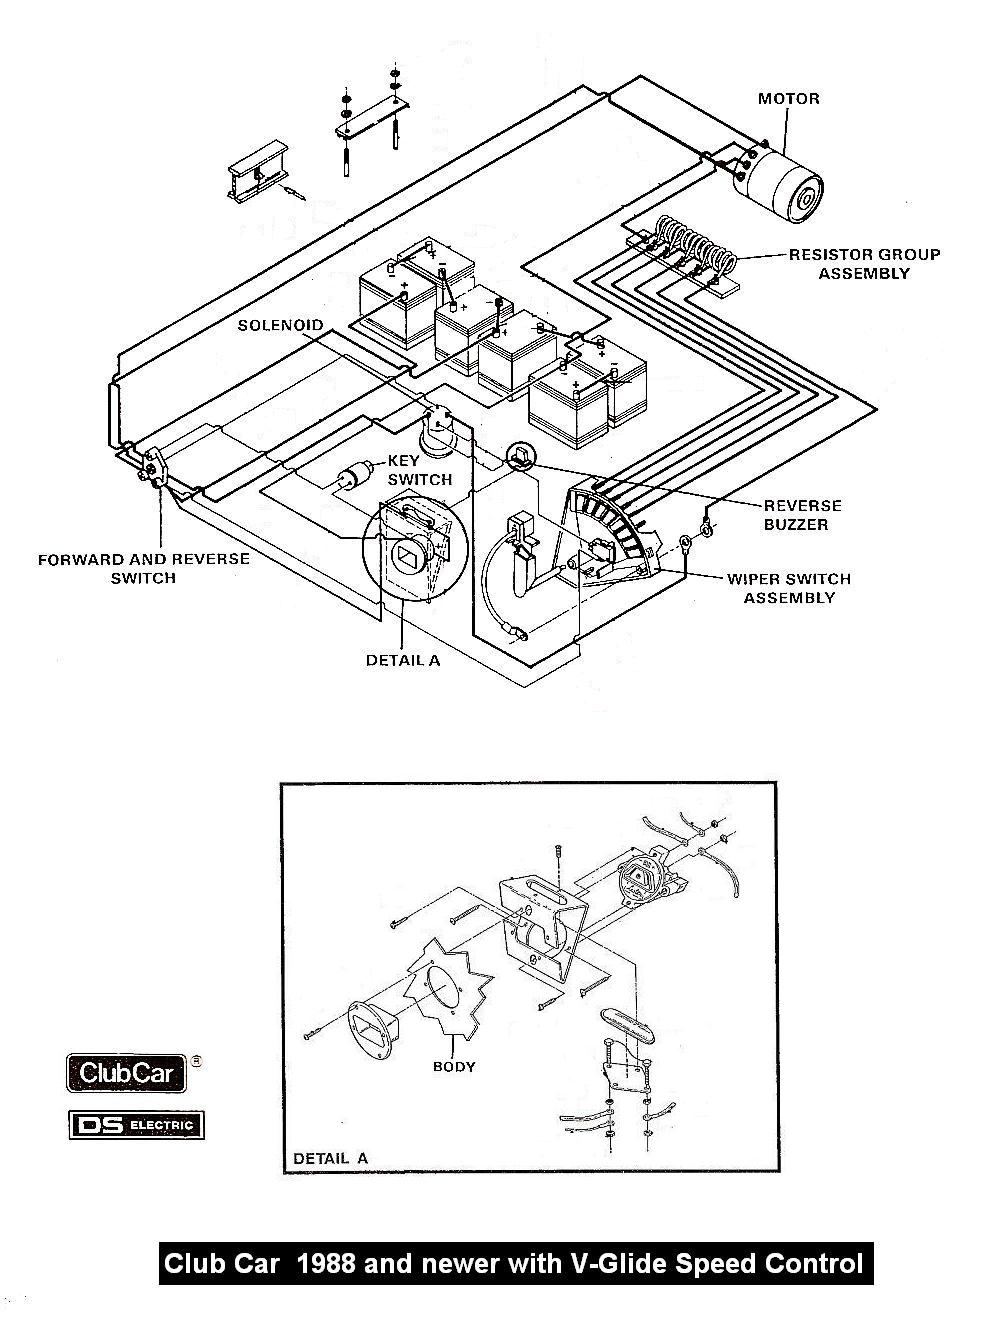 CLUB CAR SCHEMATICS | Wiring Diagram For 1999 Yamaha Electric 48 Volt Golf Cart |  | gaminde.net